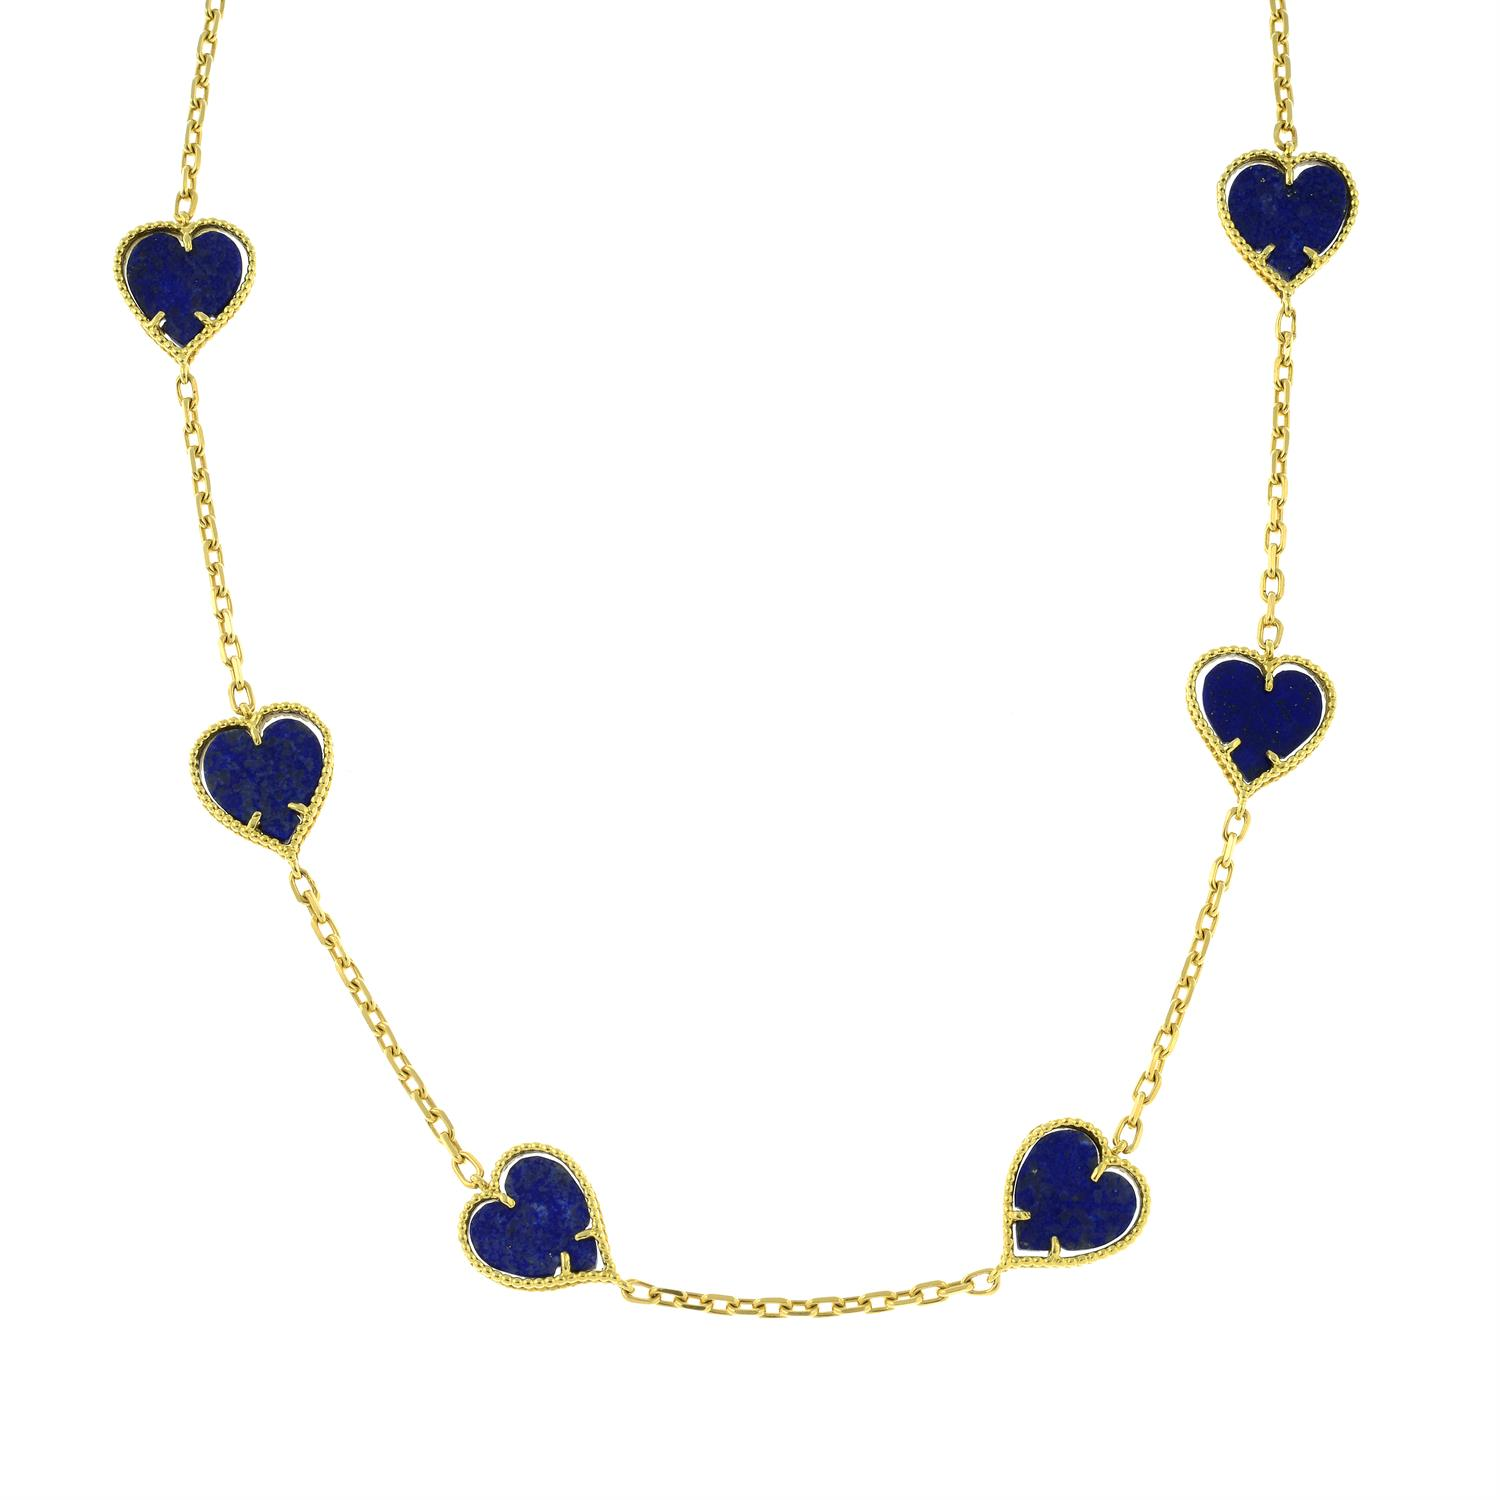 A mid 20th century 18ct gold lapis lazuli heart necklace. - Image 5 of 6